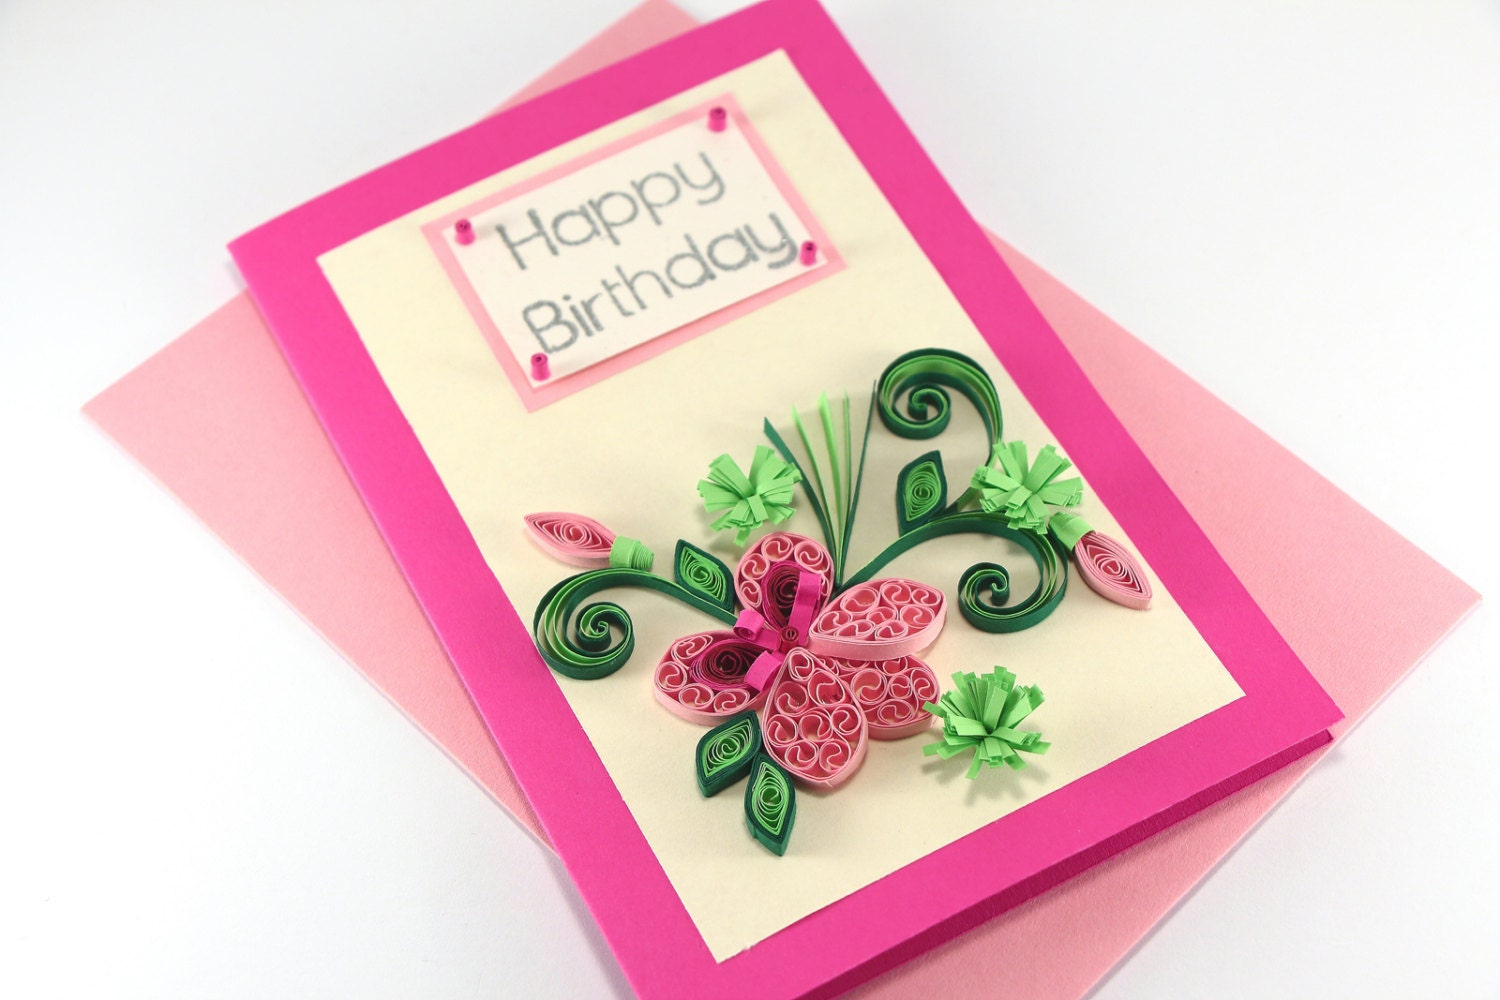 Happy birthday card handmade quilling flower for mom zoom dhlflorist Choice Image